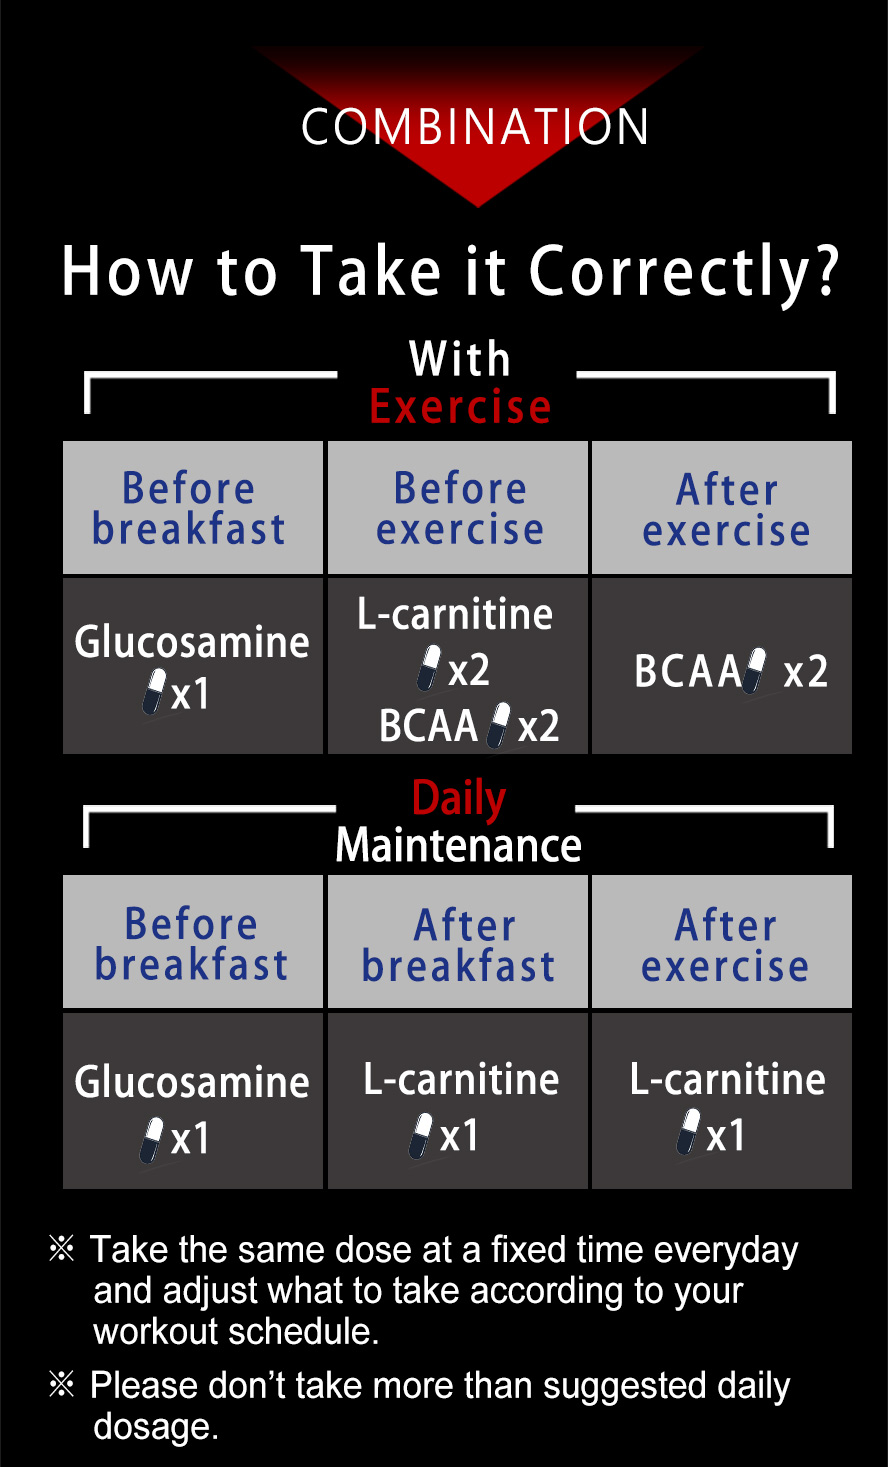 L-carnitine helps you lose weight